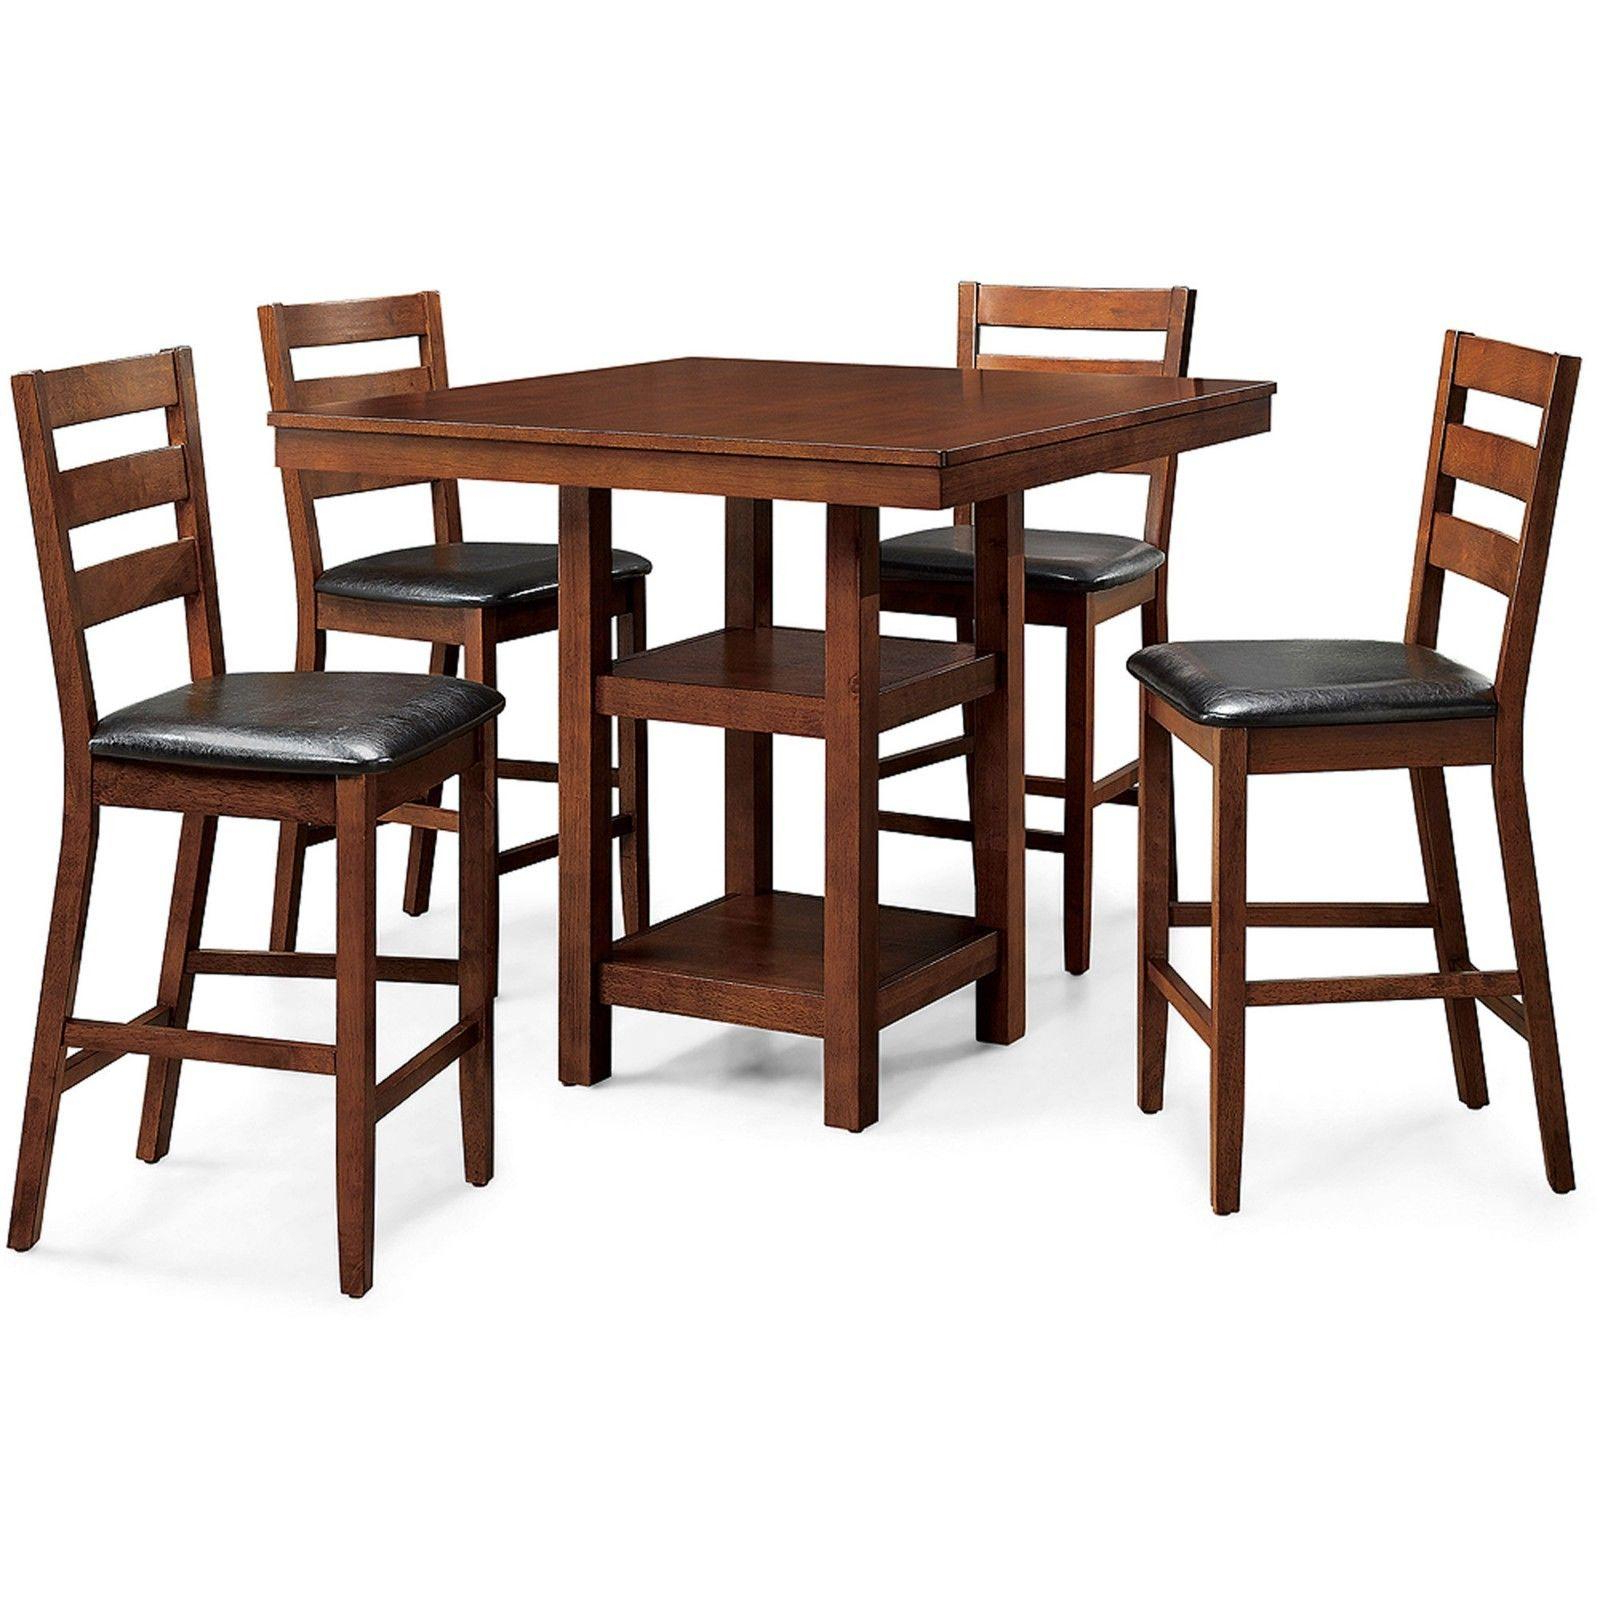 Ligon 3 Piece Breakfast Nook Dining Sets Intended For Most Popular Counter Height Dining Table Set W/ 4 Hig (View 8 of 20)